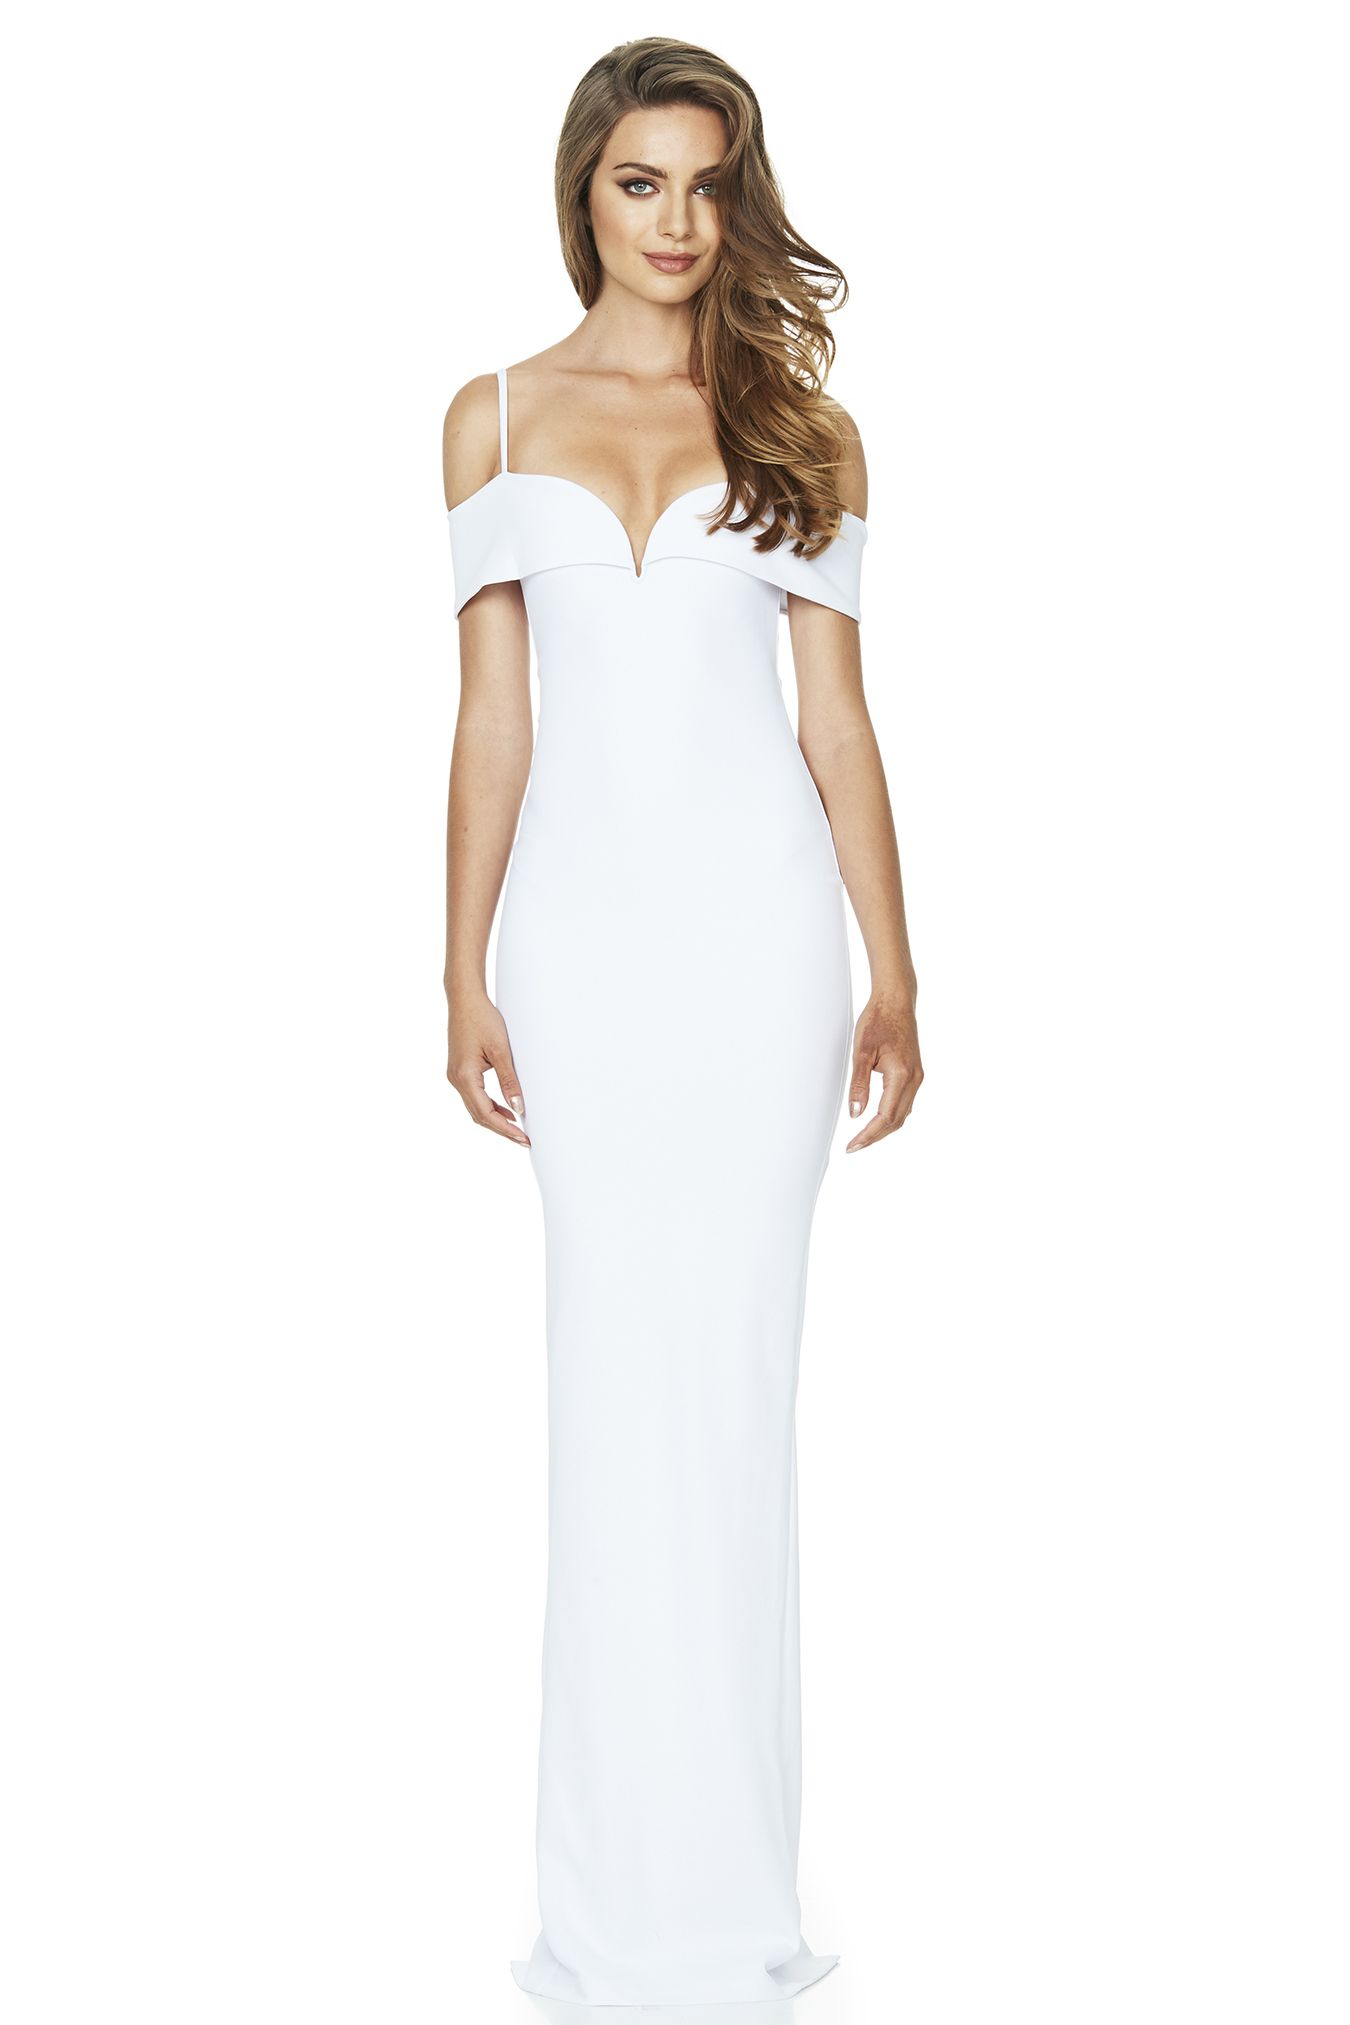 Pretty Woman Gown White (PREORDER)   Pretty woman, Gowns and Woman